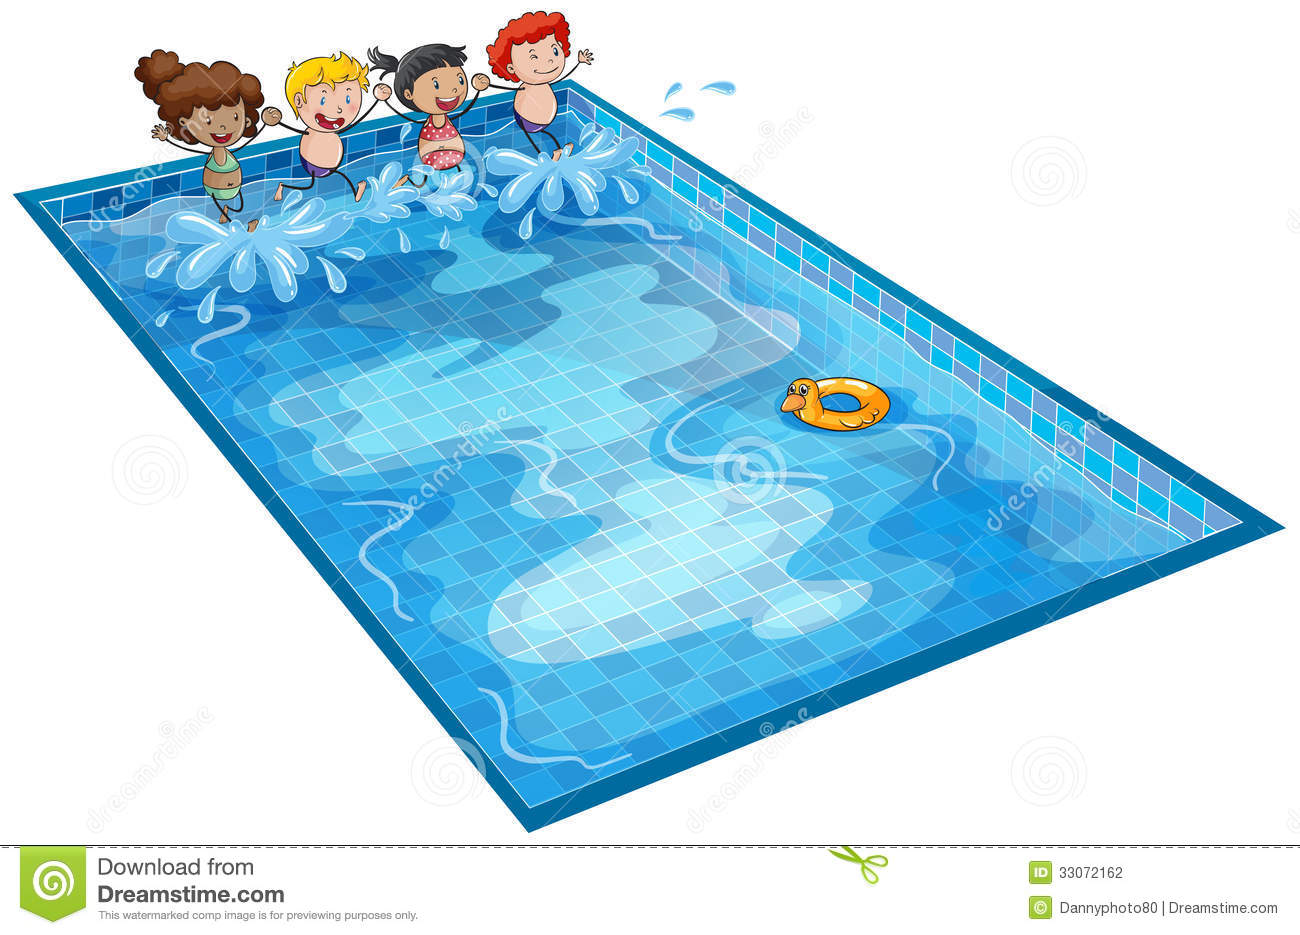 Swimming Pool Clip Art : Kids in swimming tank stock vector illustration of lady